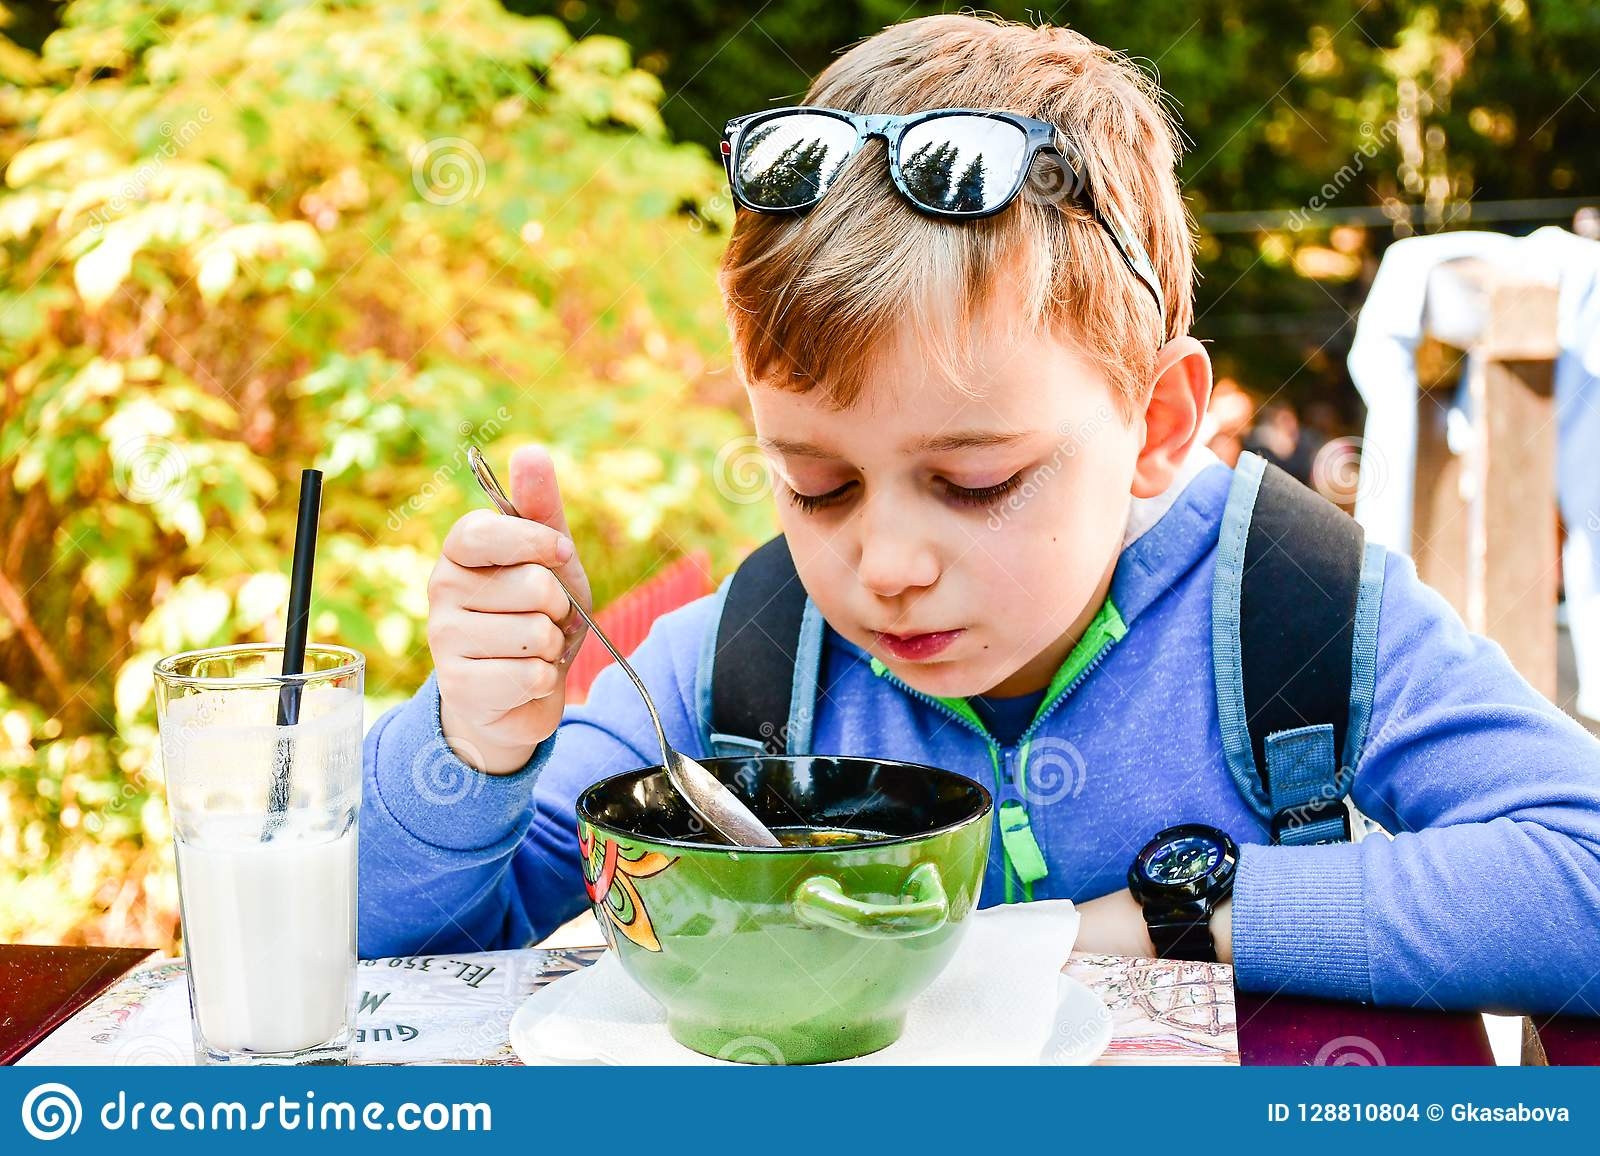 Child eating a soup